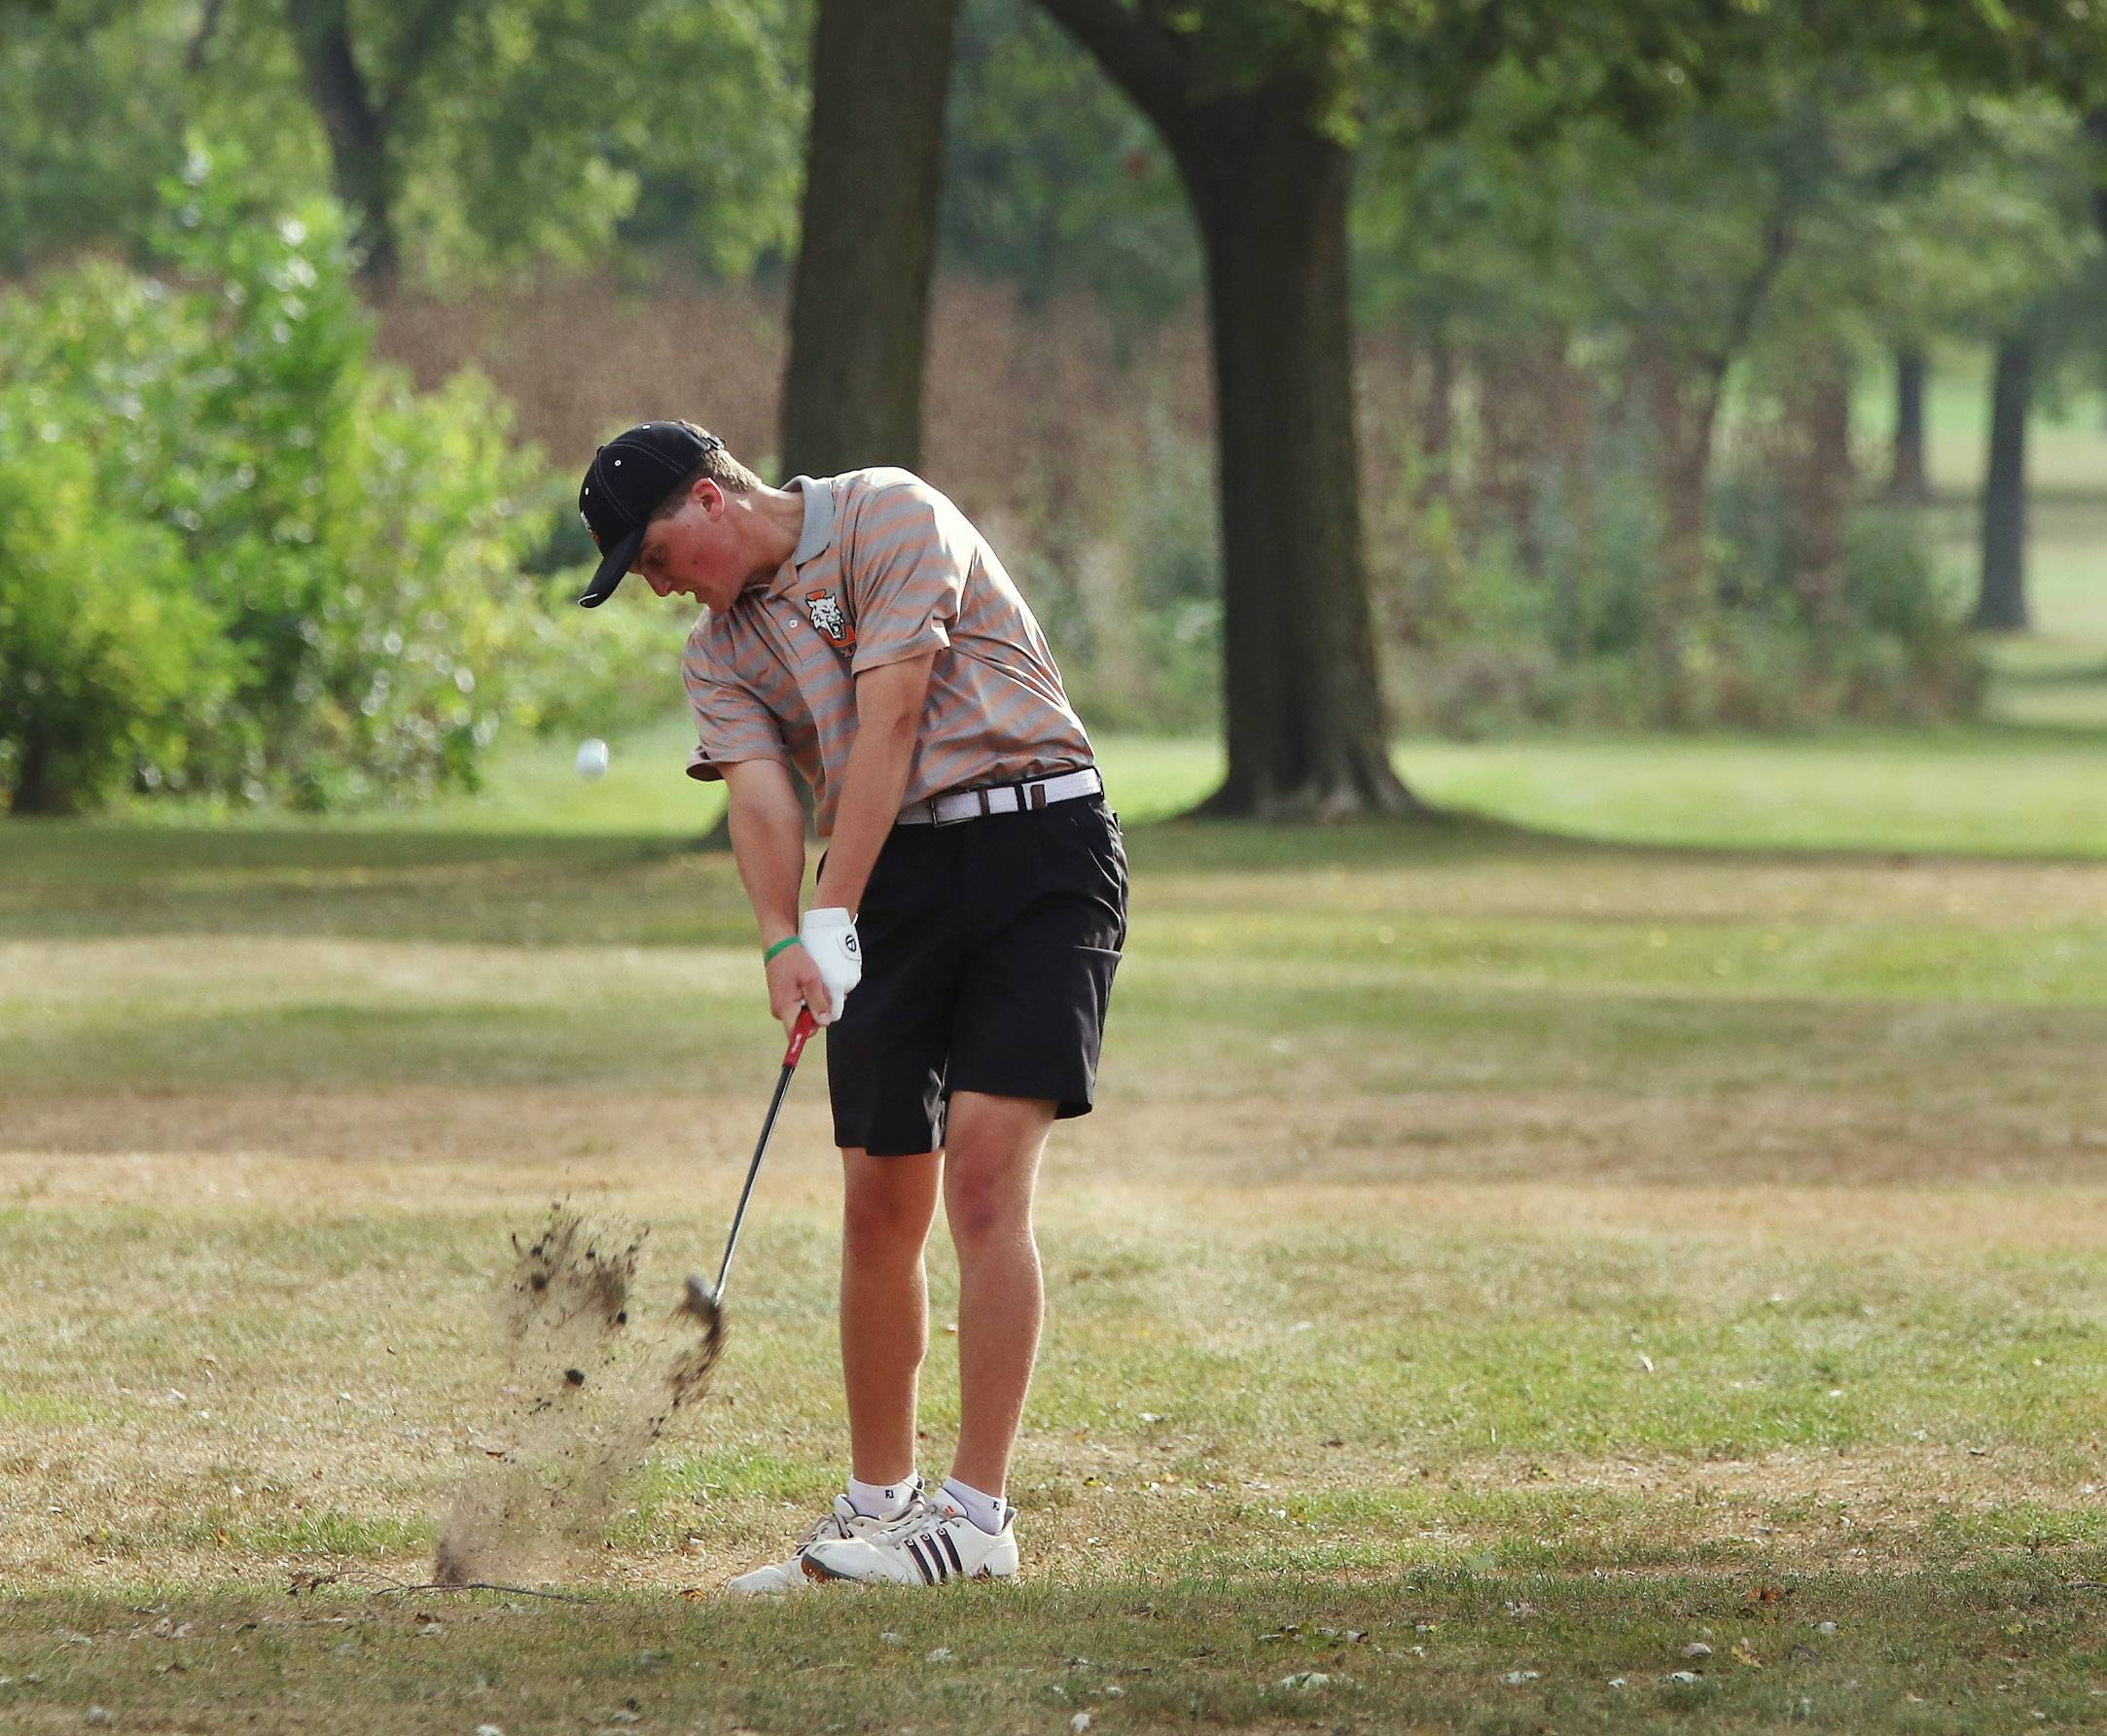 Libertyville golfer Derek Calamari hits the ball on the fourth hole during the North Suburban Conference tournament on Tuesday at Willow Glen Golf Course in North Chicago.